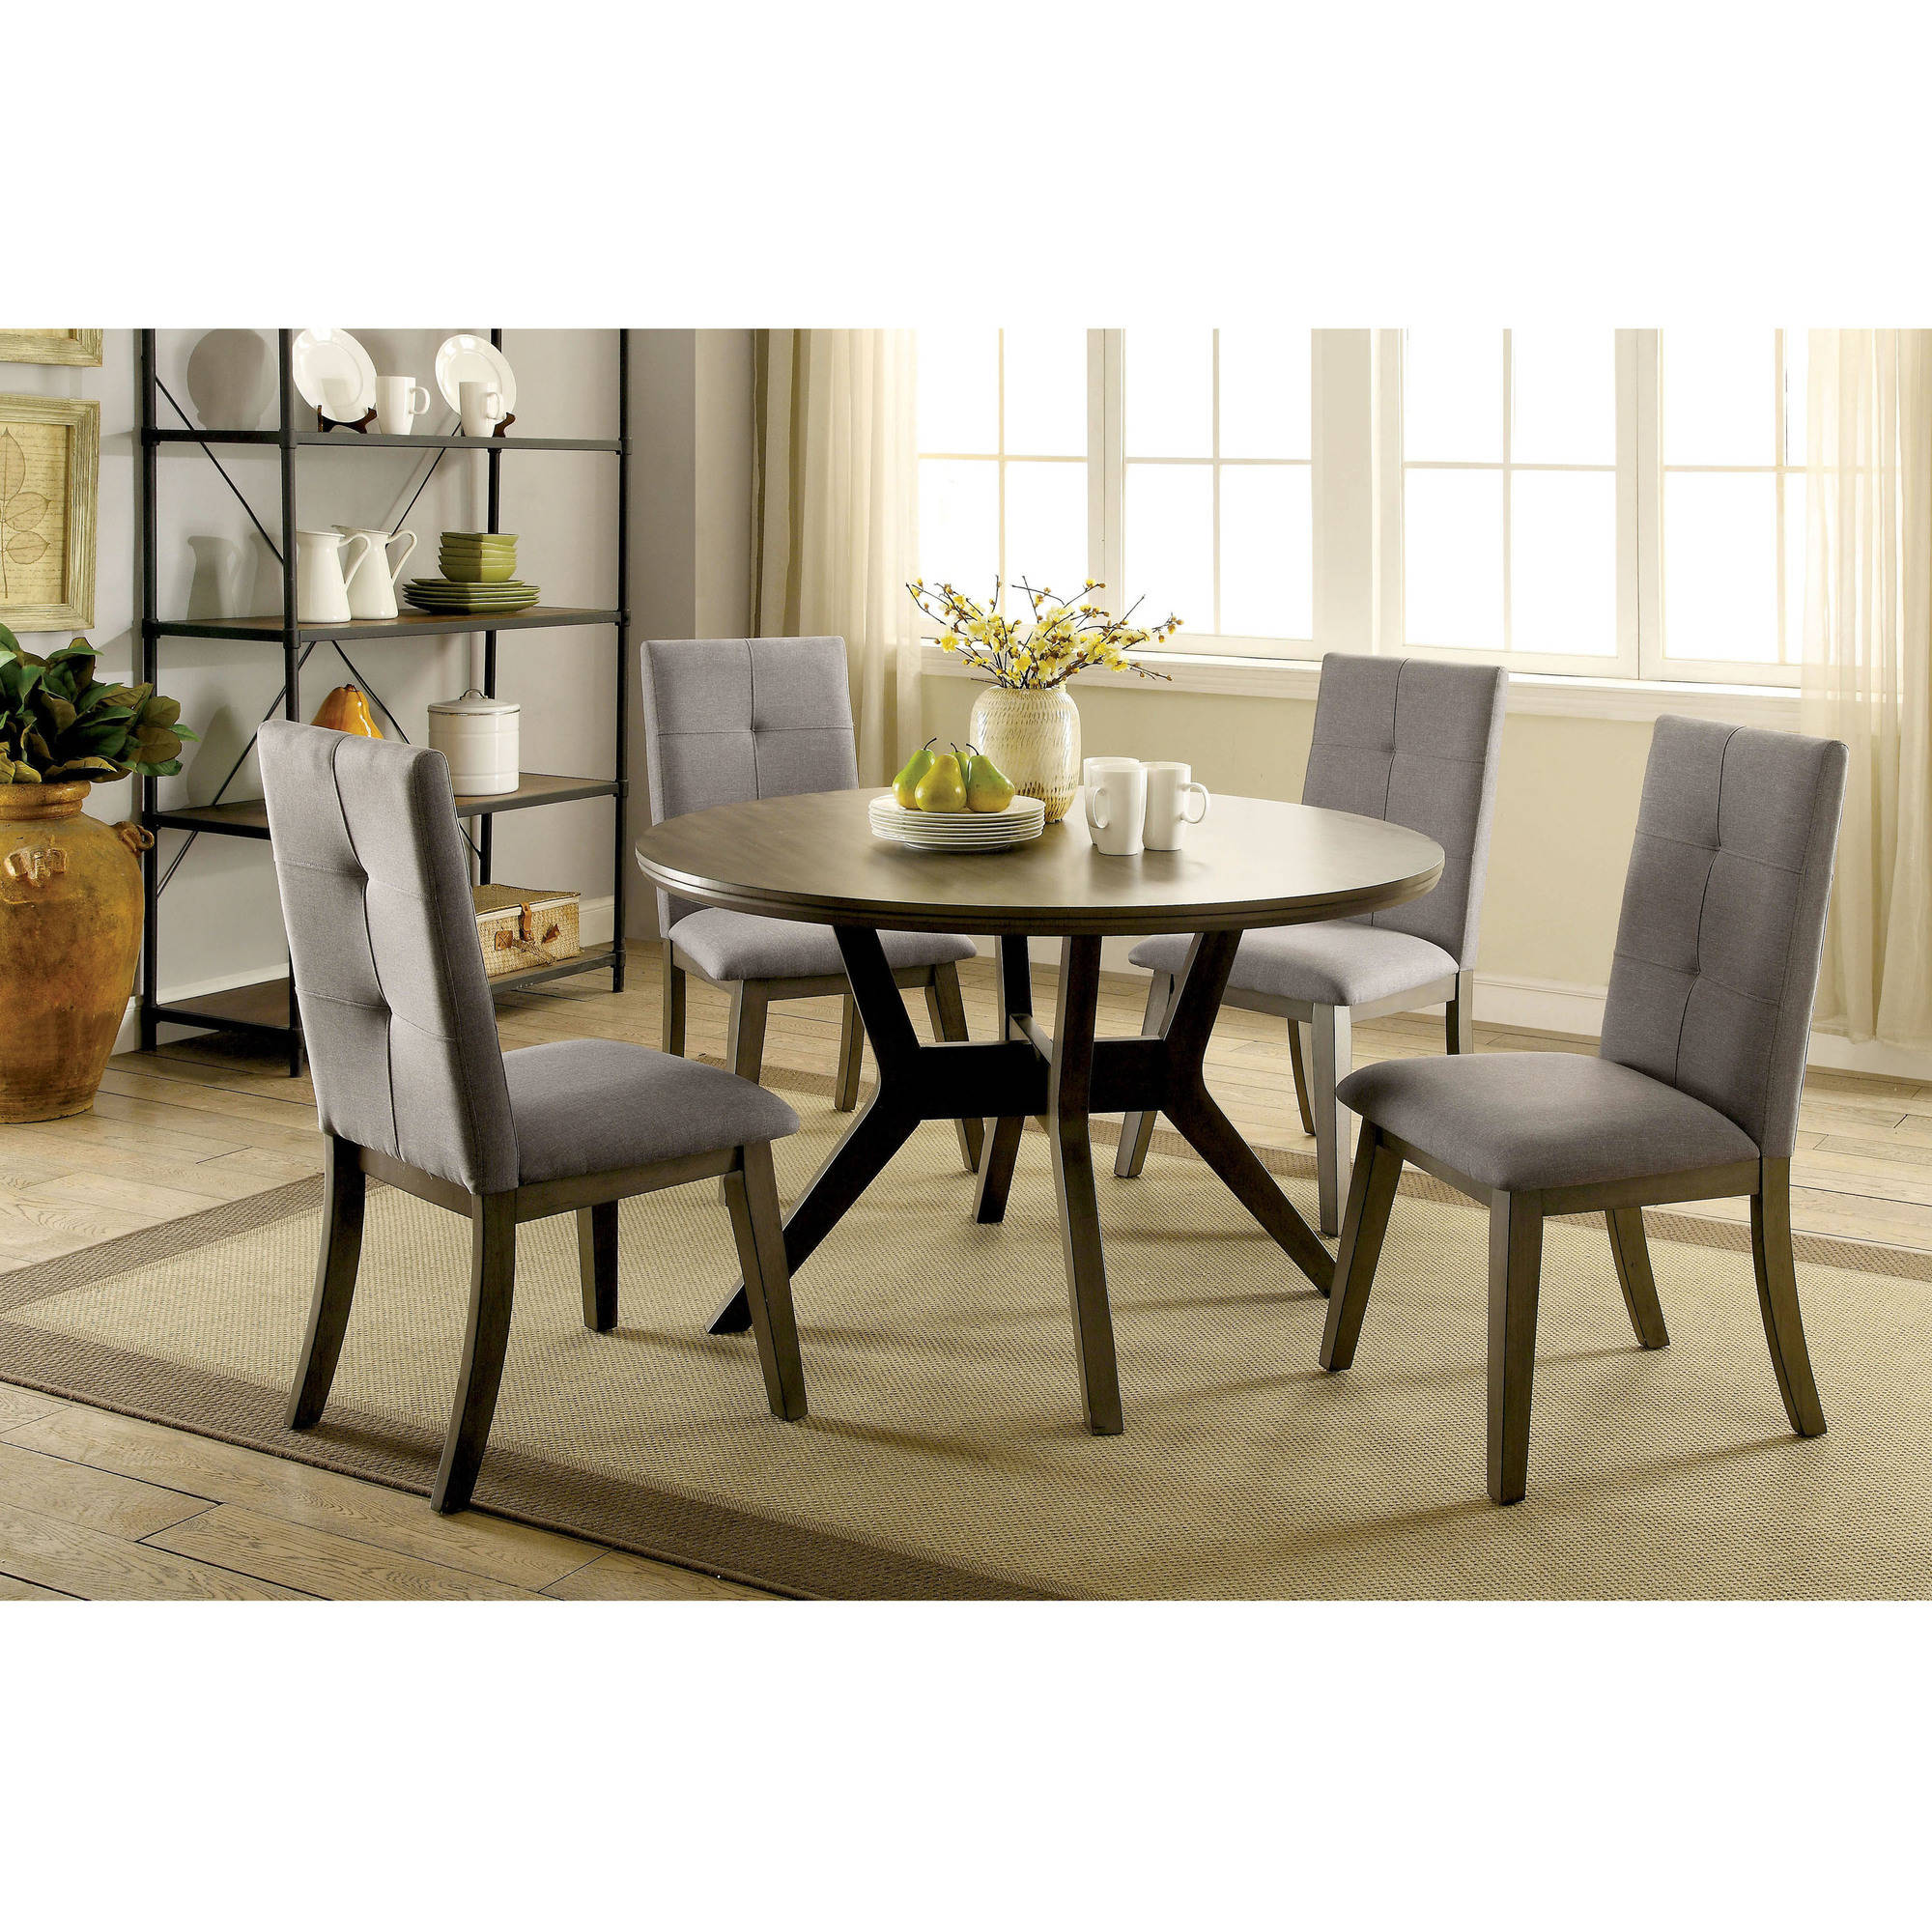 Walmart Kitchen Tables: Furniture Of America Lailina Mid-Century Round Dining